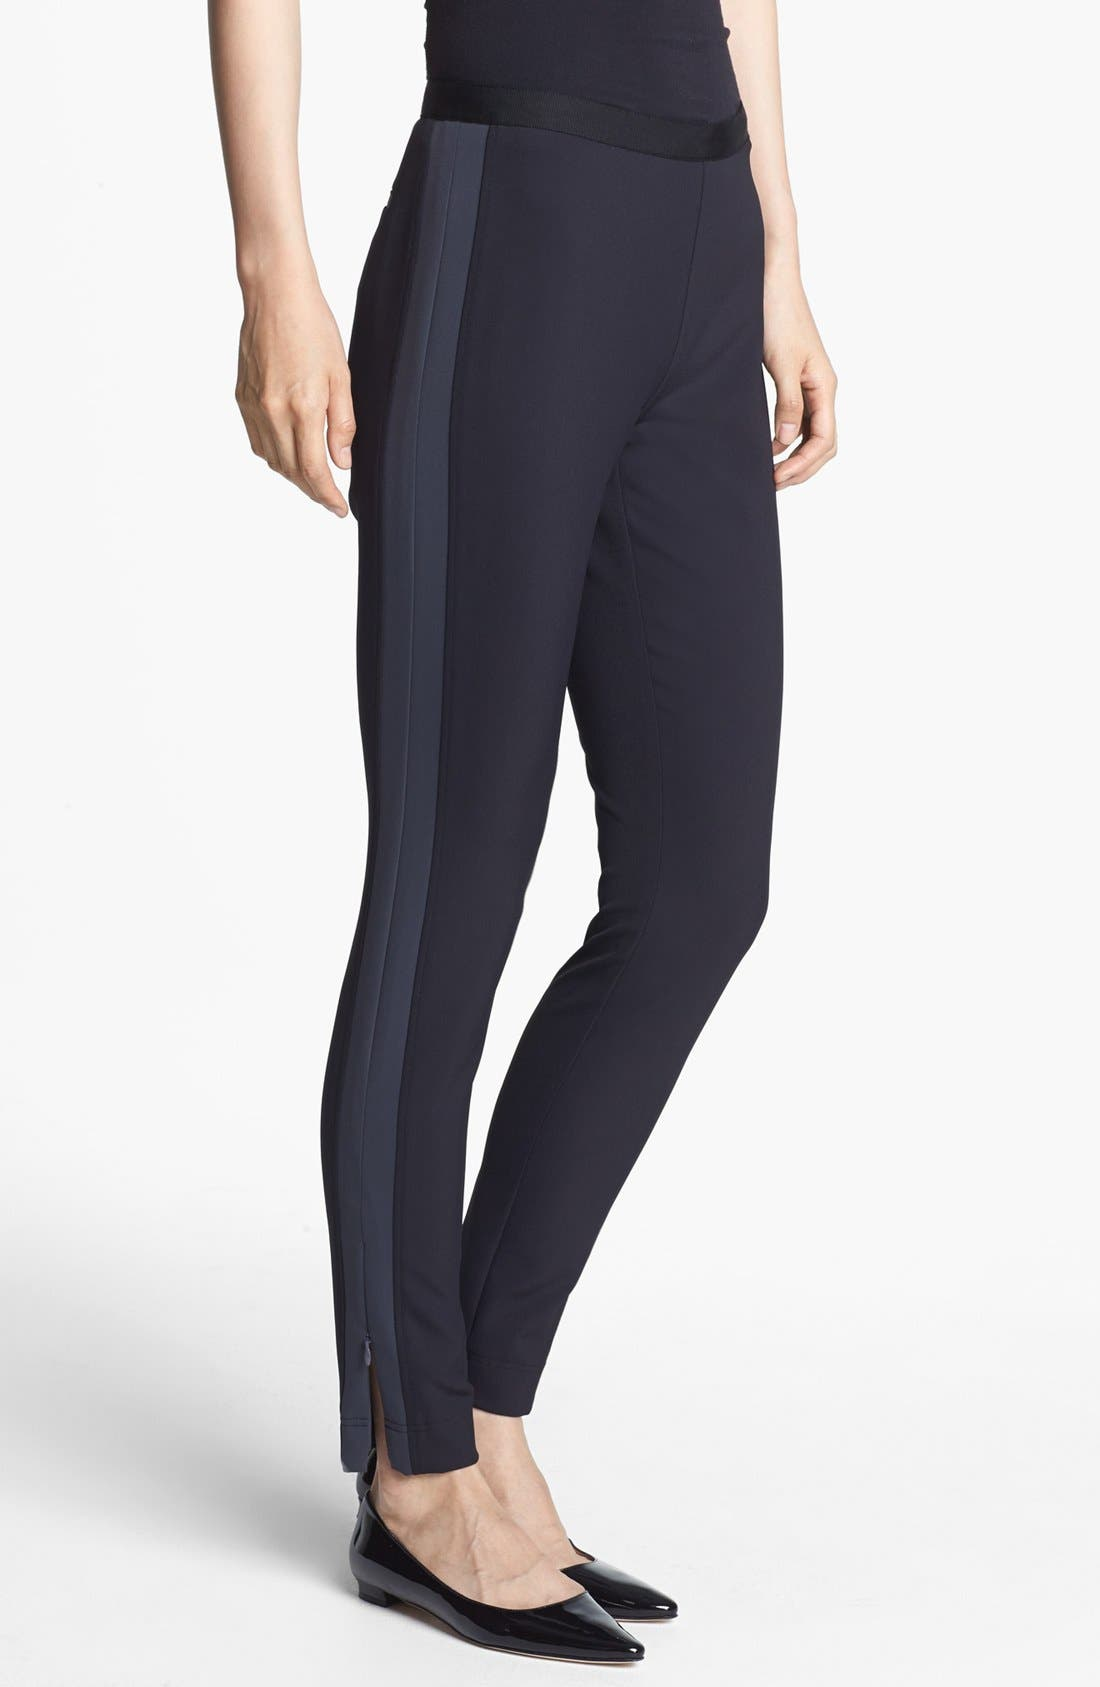 Alternate Image 1 Selected - Miss Wu Paneled Tech Pants (Nordstrom Exclusive)